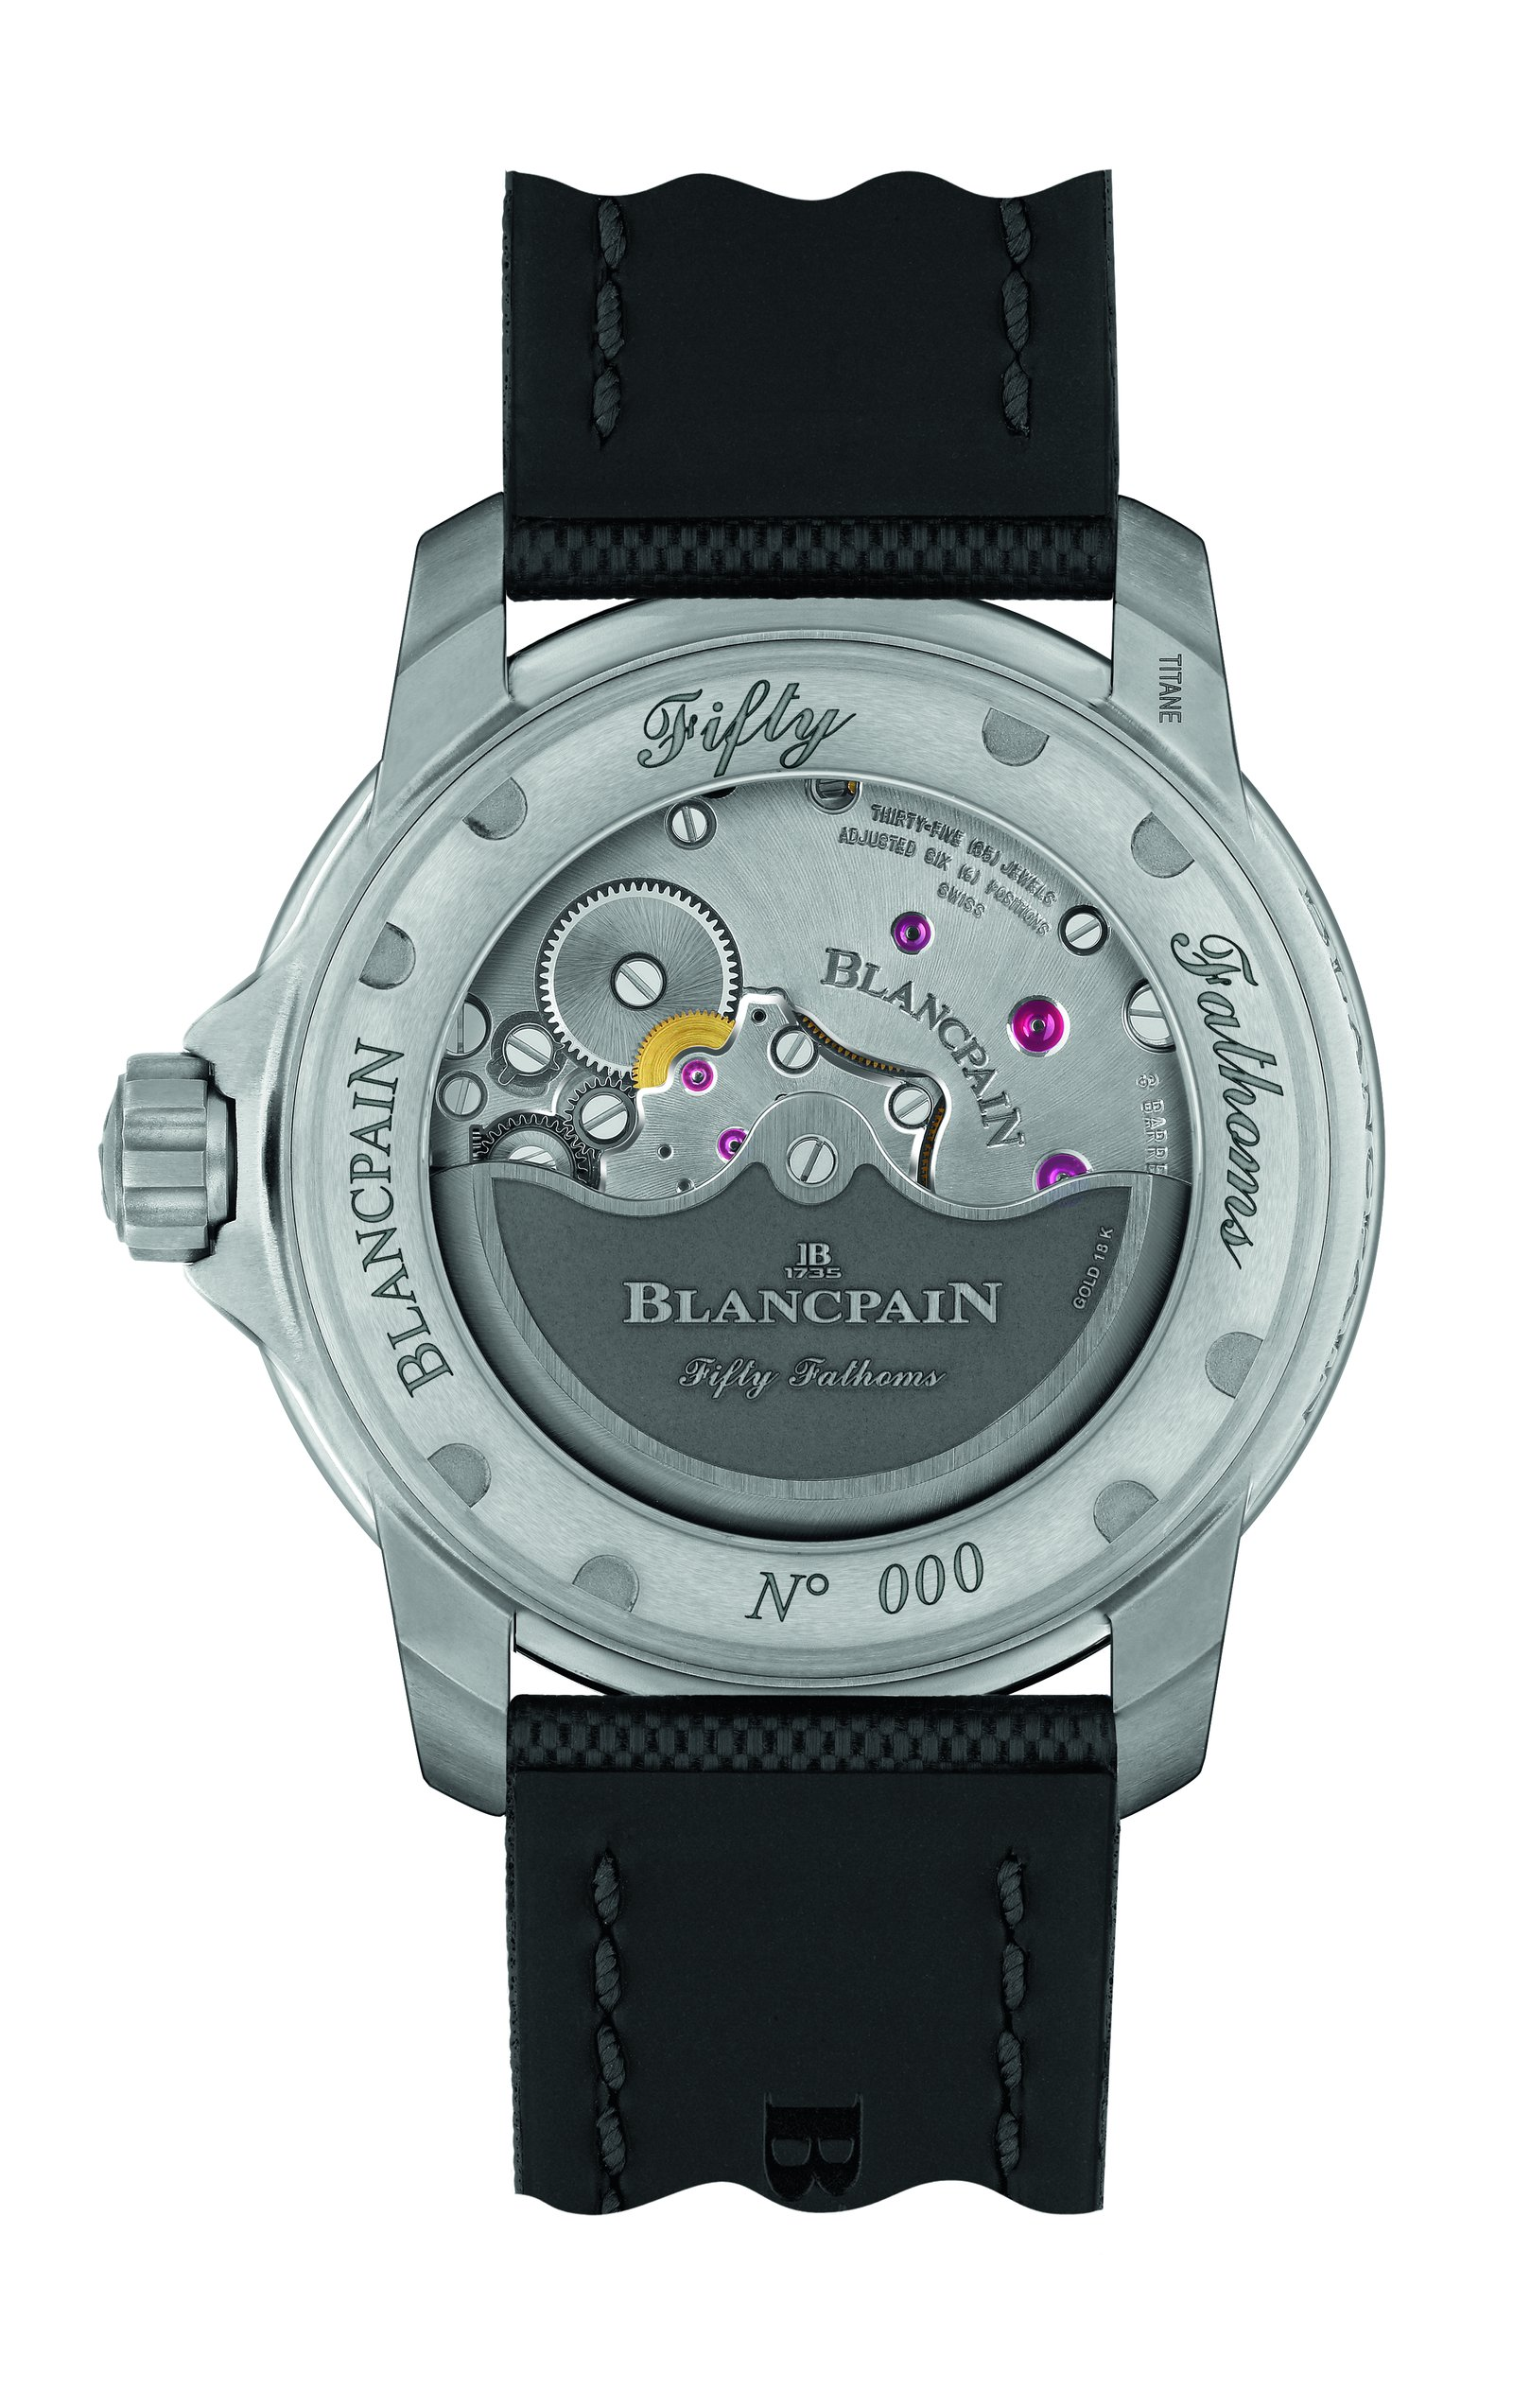 Blancpain Fifty Fathoms Titanium back